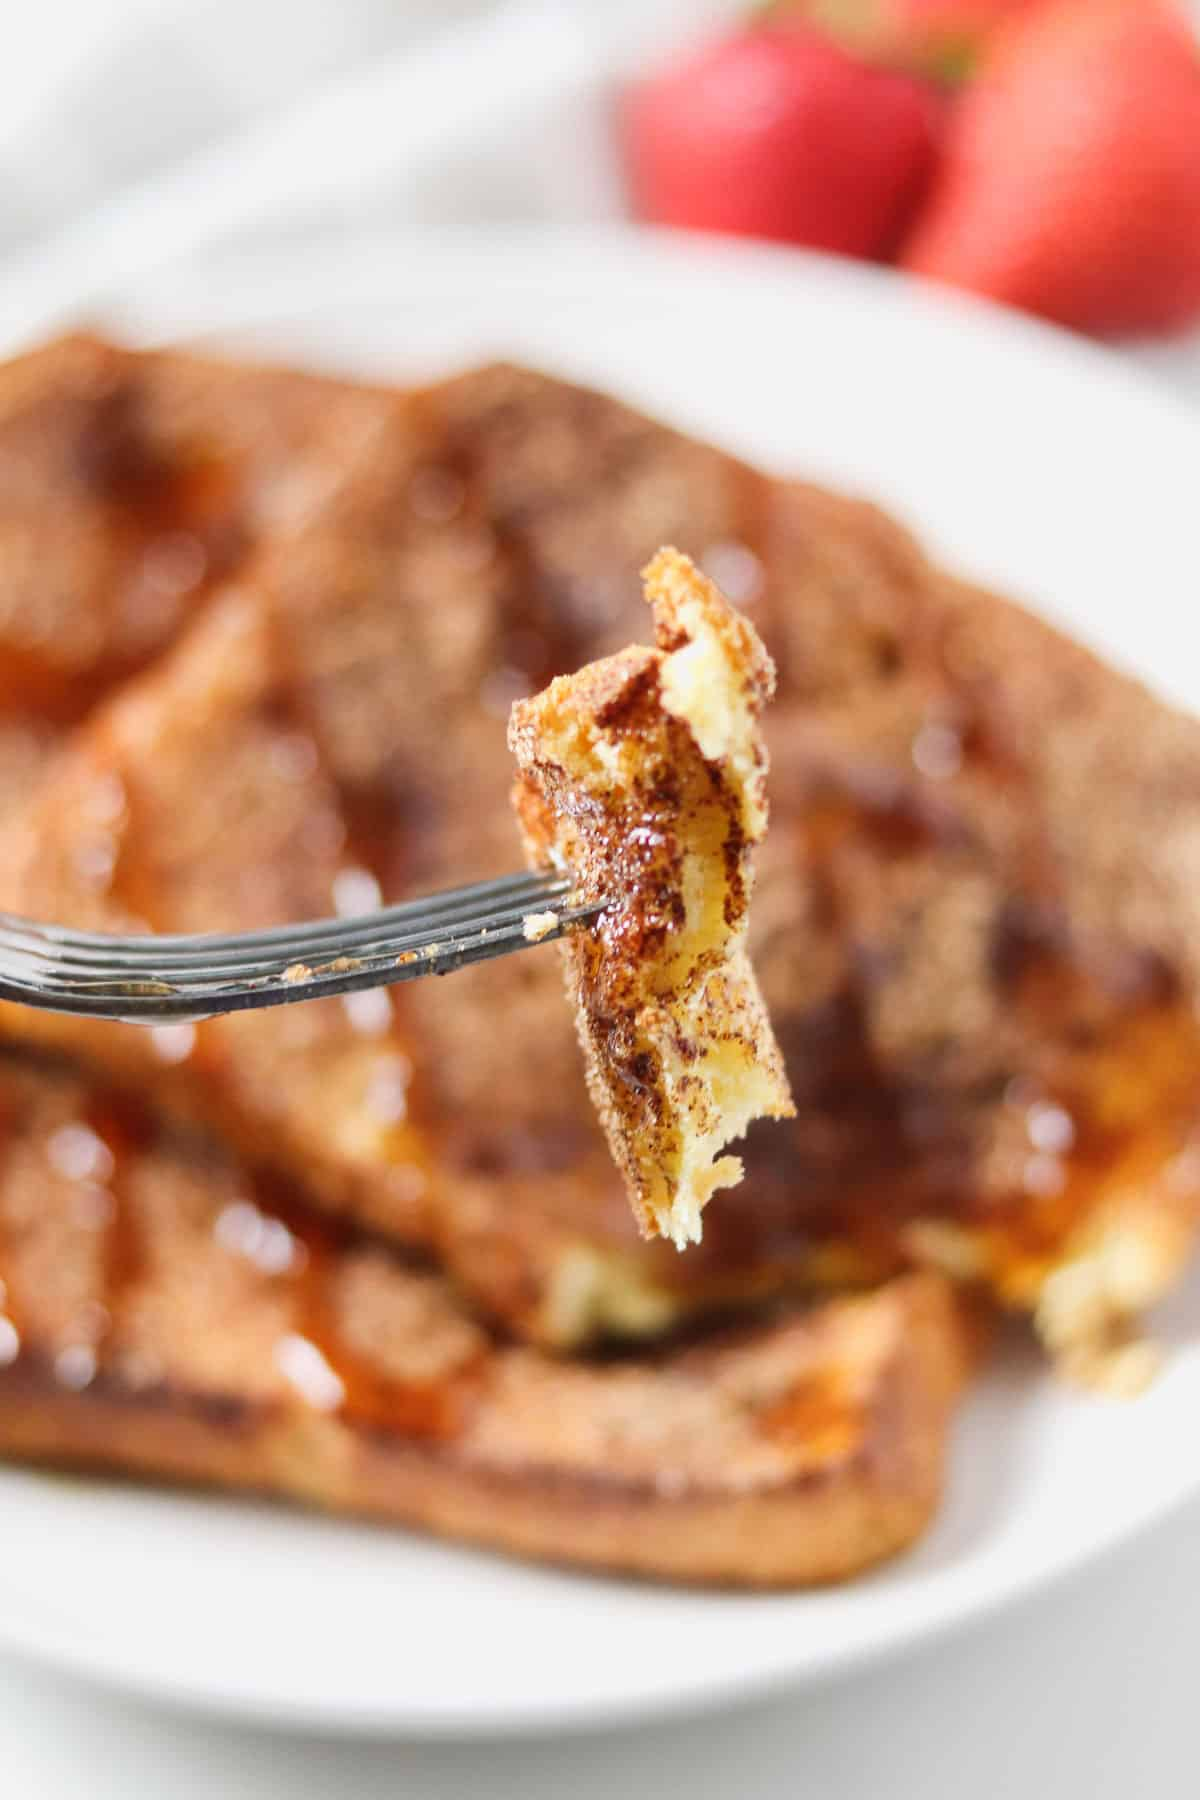 taking a bite of air fryer french toast